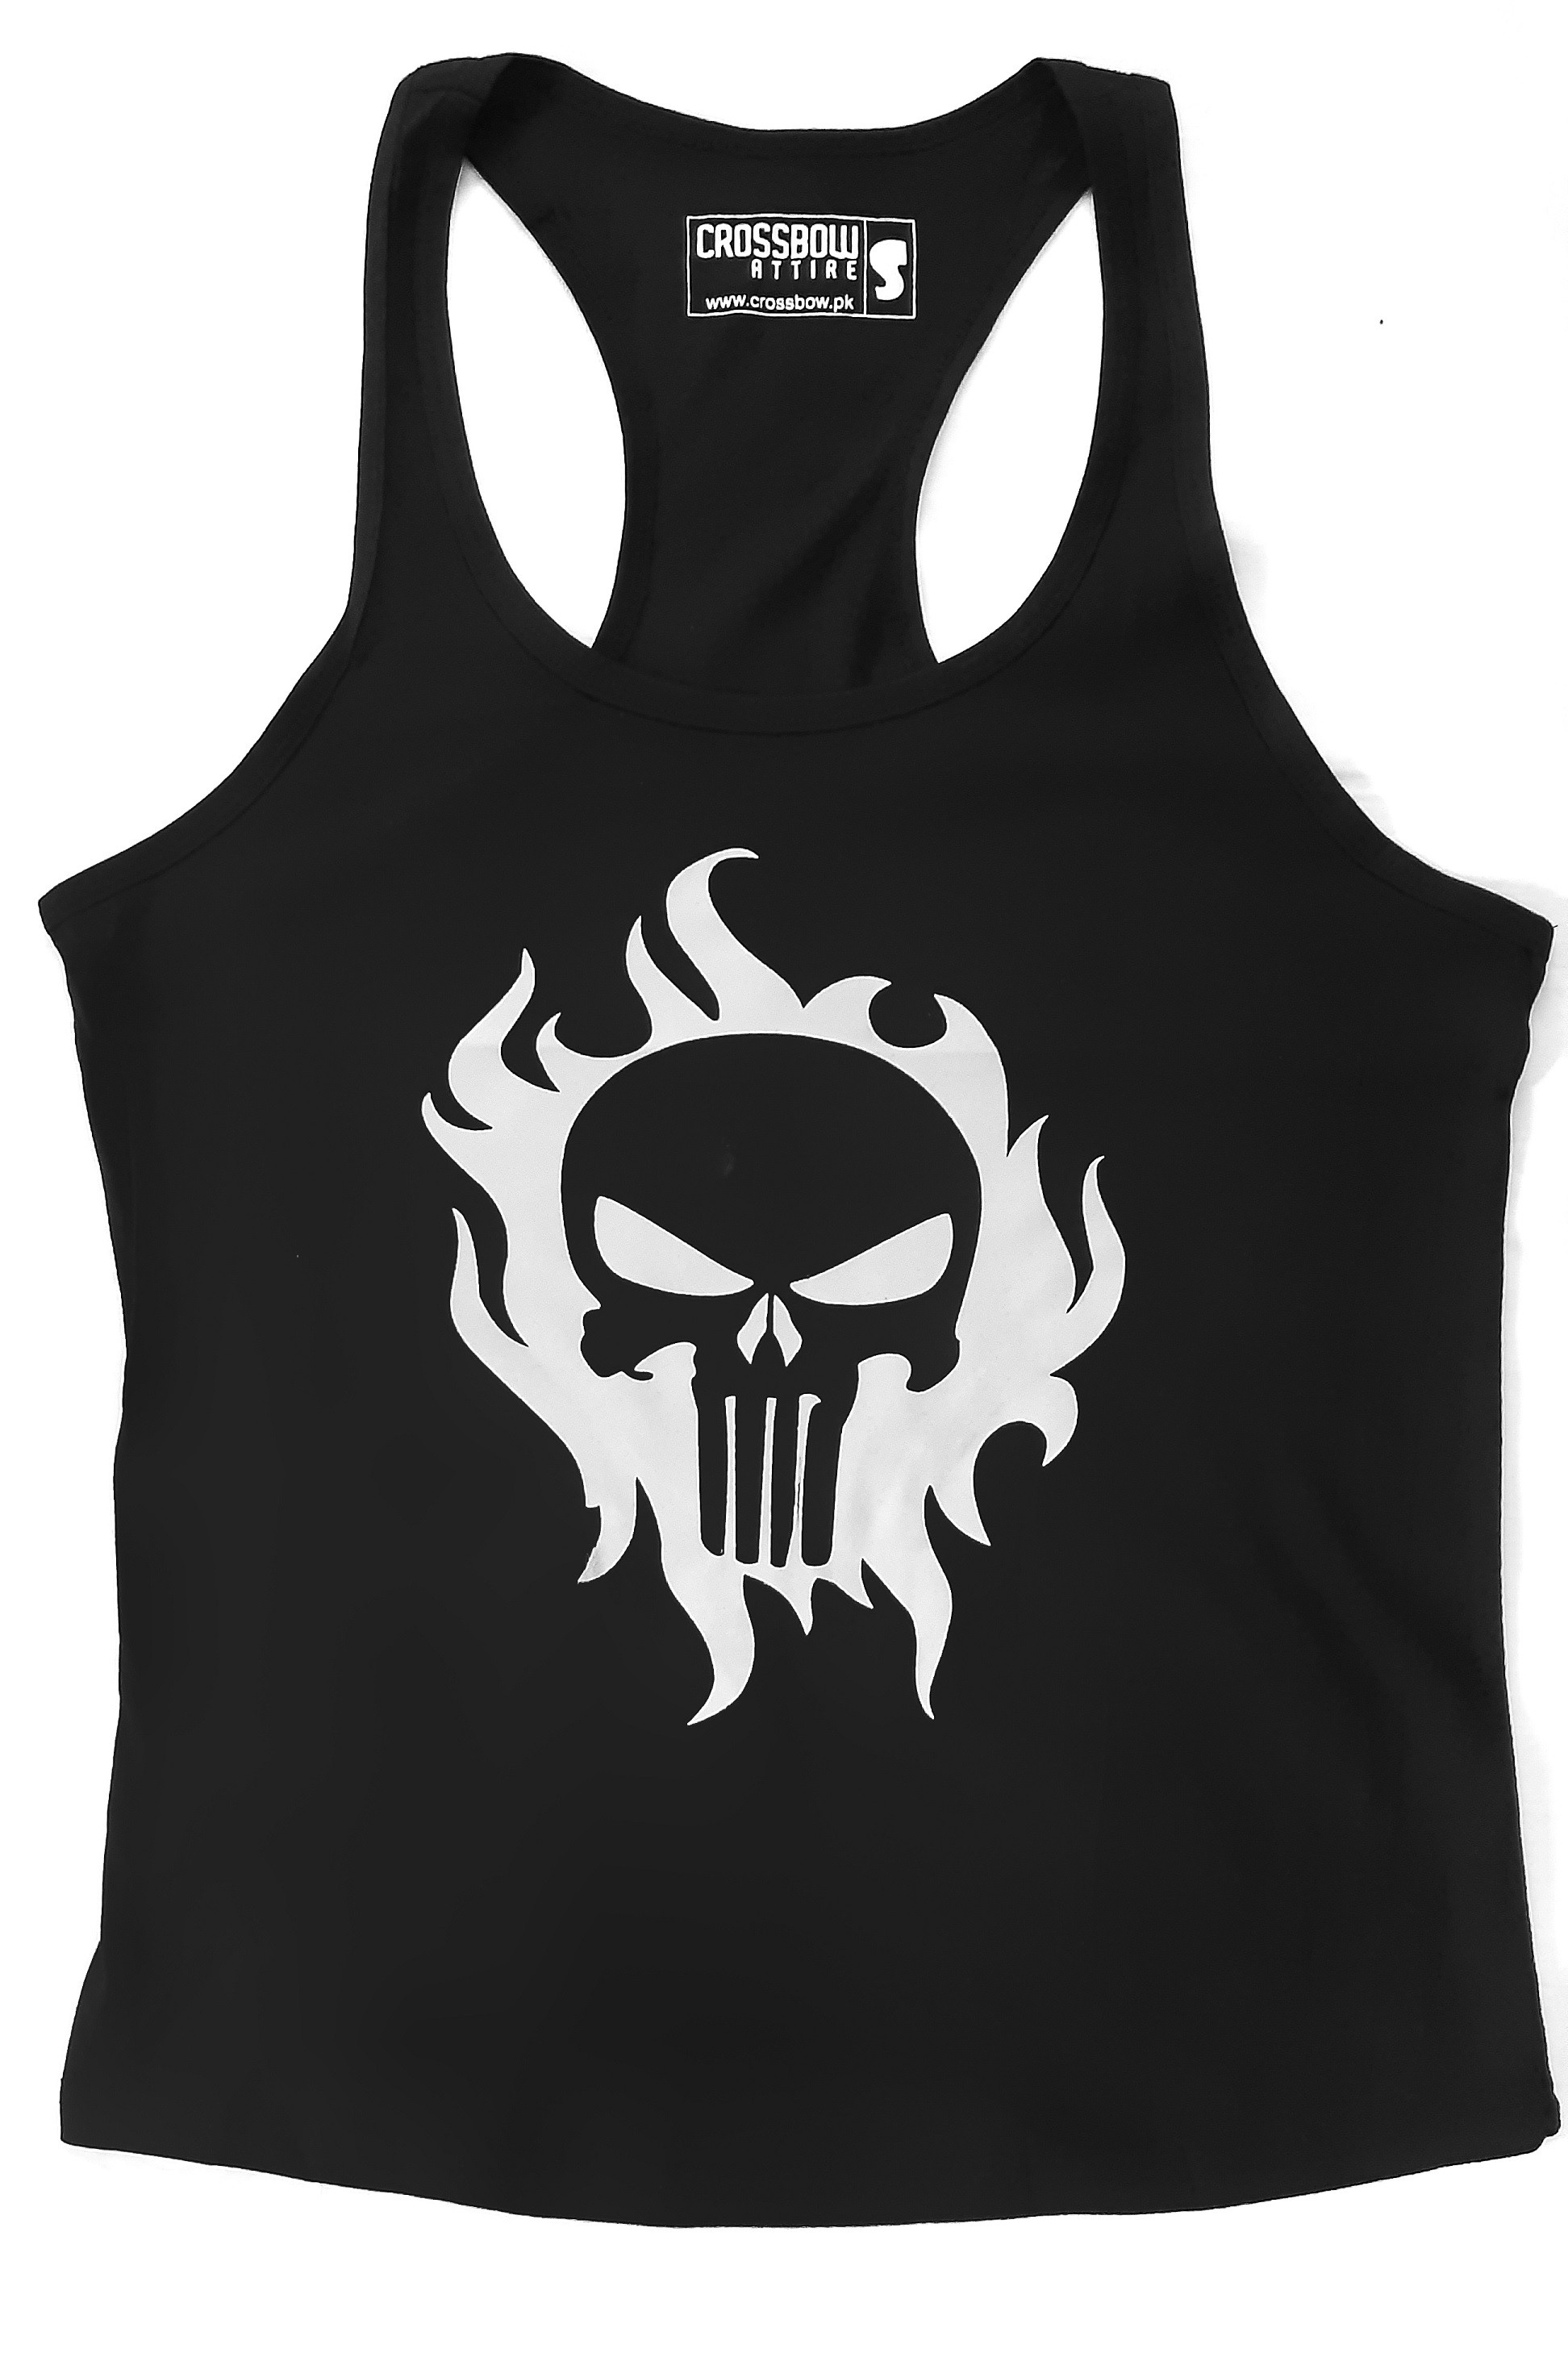 Crossbow Punisher Skull Summer Cotton Tanktop for Gym, Fitness and Training for Men